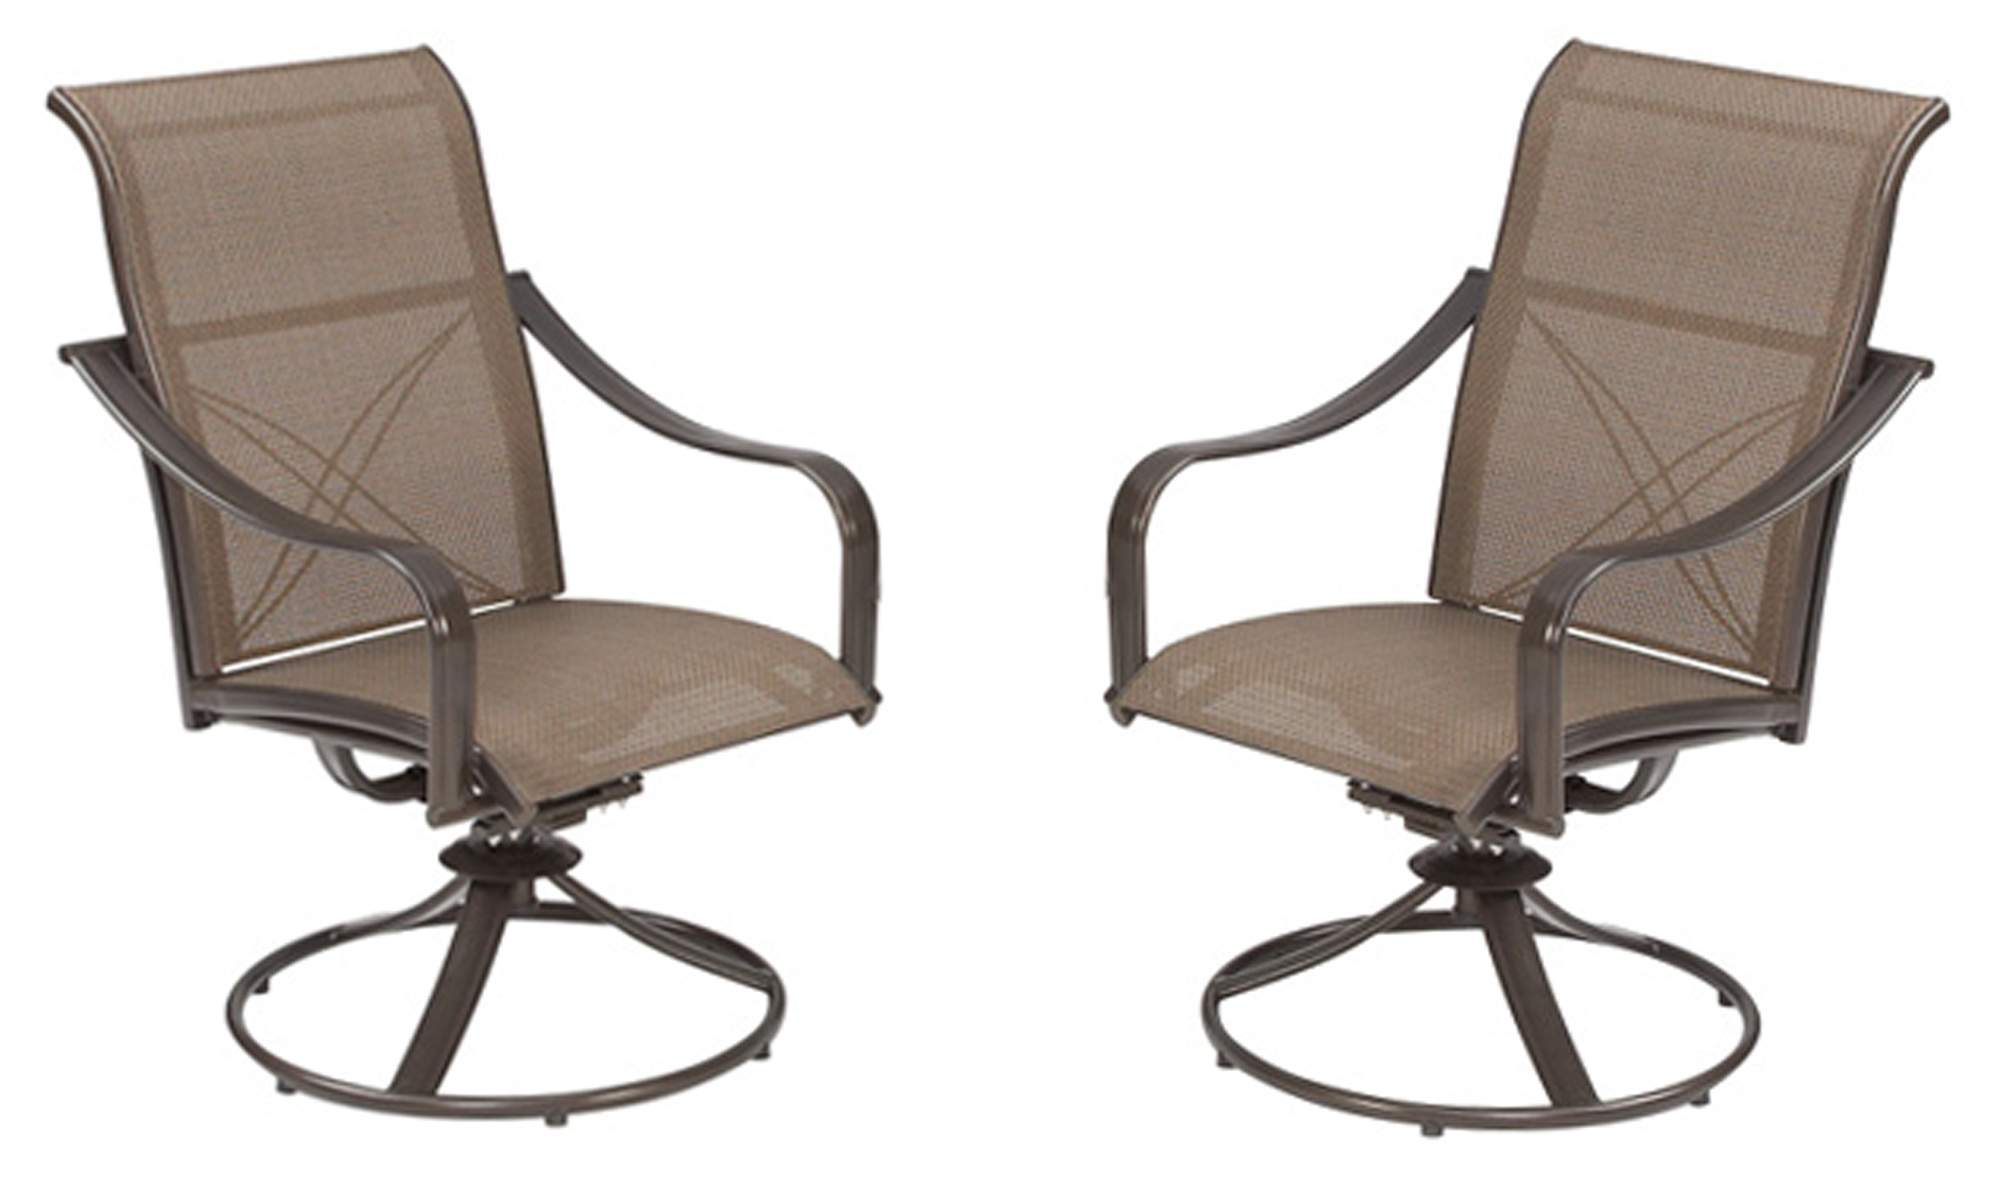 Casual Living Worldwide Recalls Swivel Patio Chairs